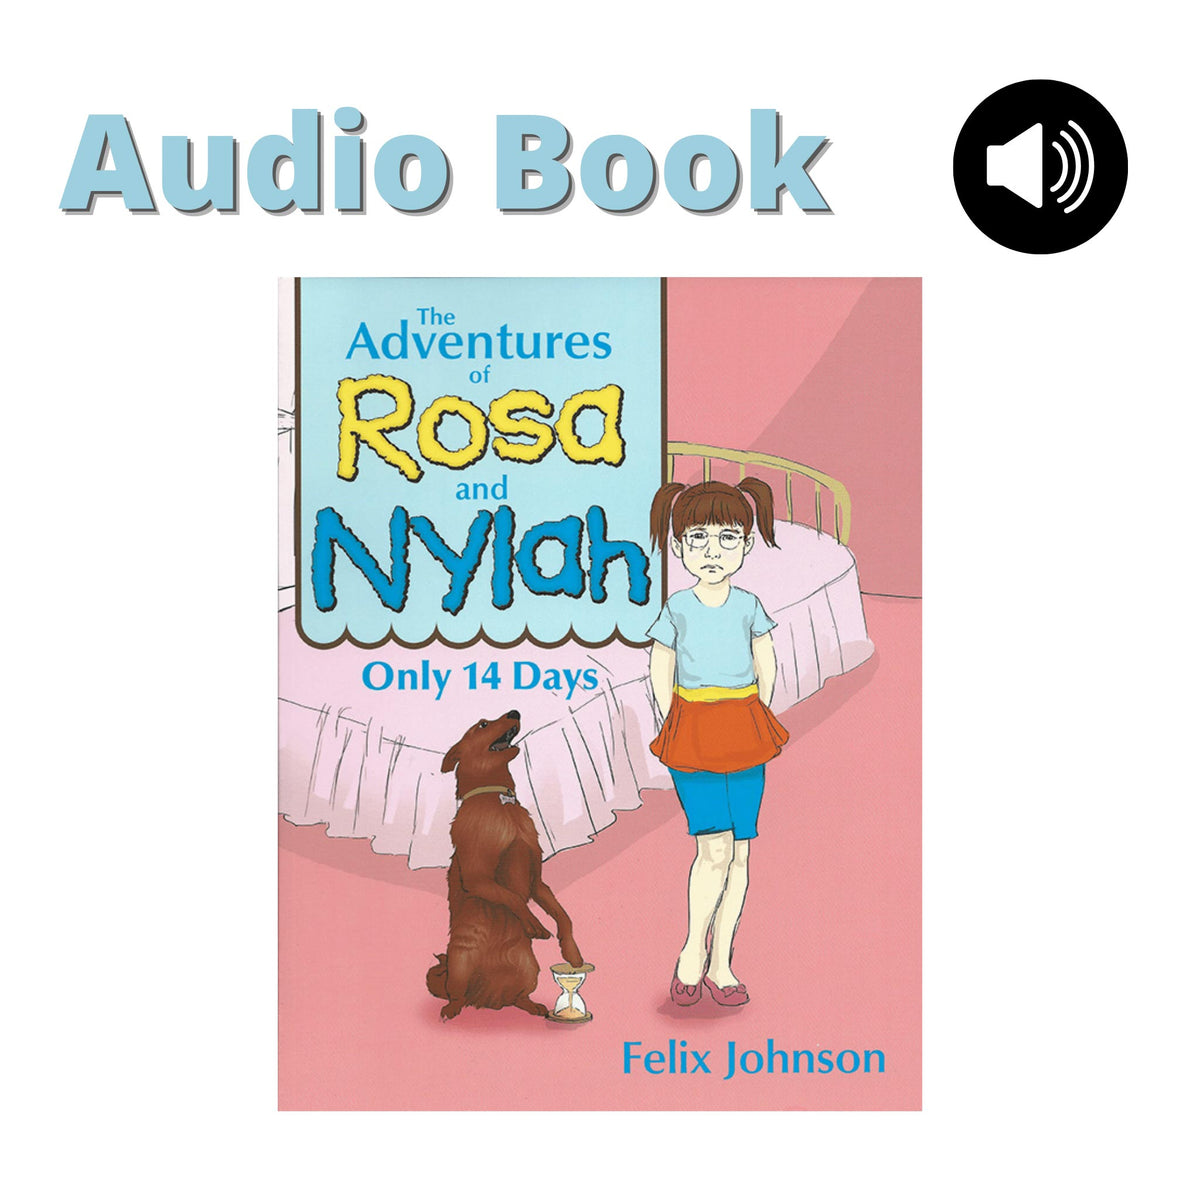 The Adventures of Rosa and Nylah available as an Audio Book